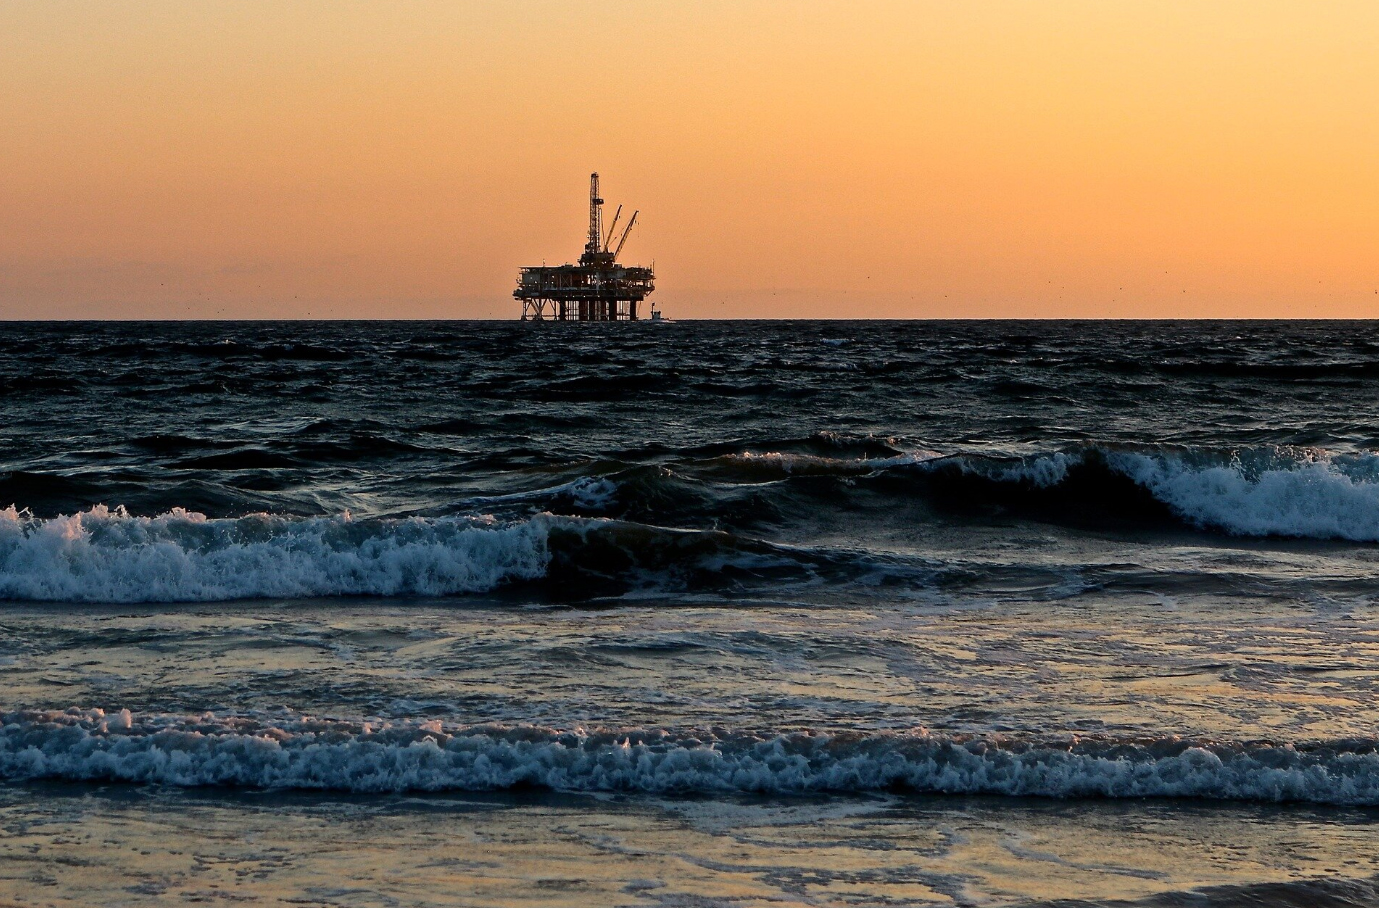 Offshore oil and gas platforms emit more methane than previously thought